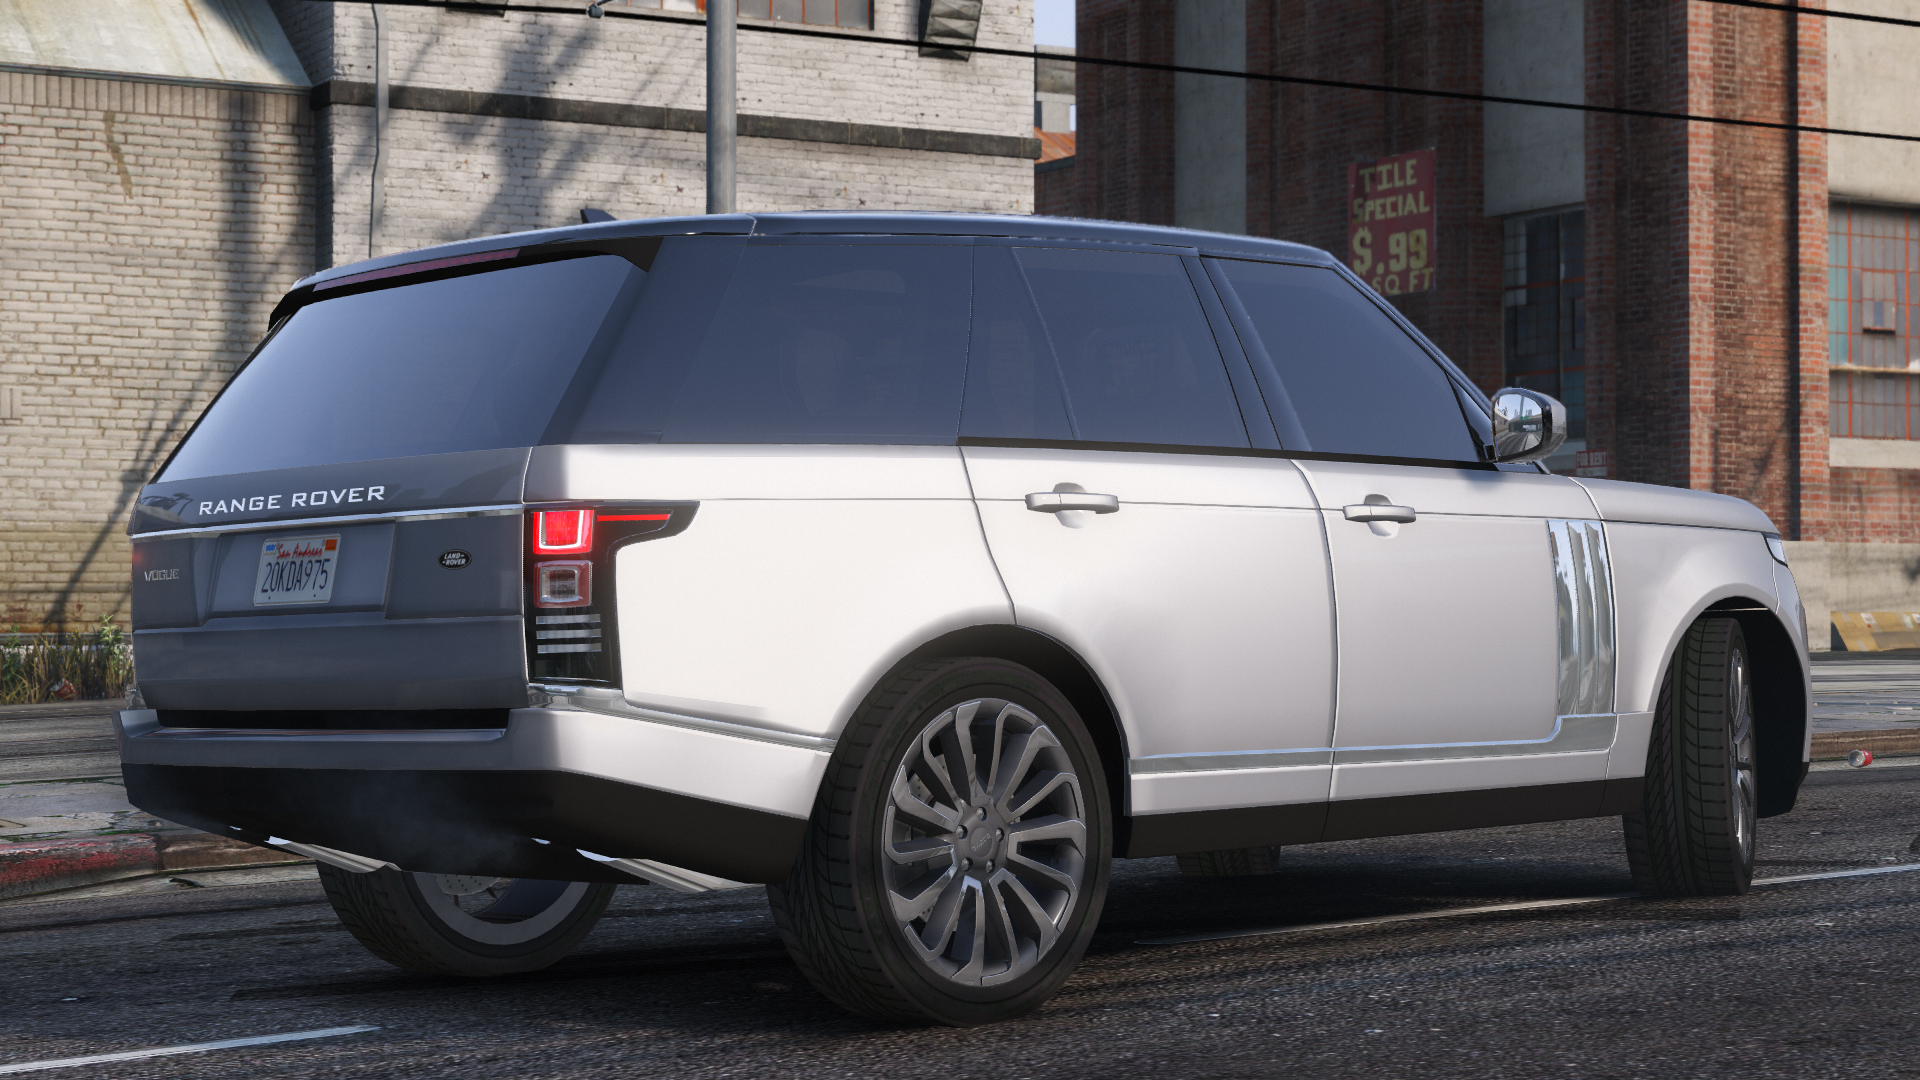 Range Rover Vogue 2013 1.2 для GTA V - Скриншот 1